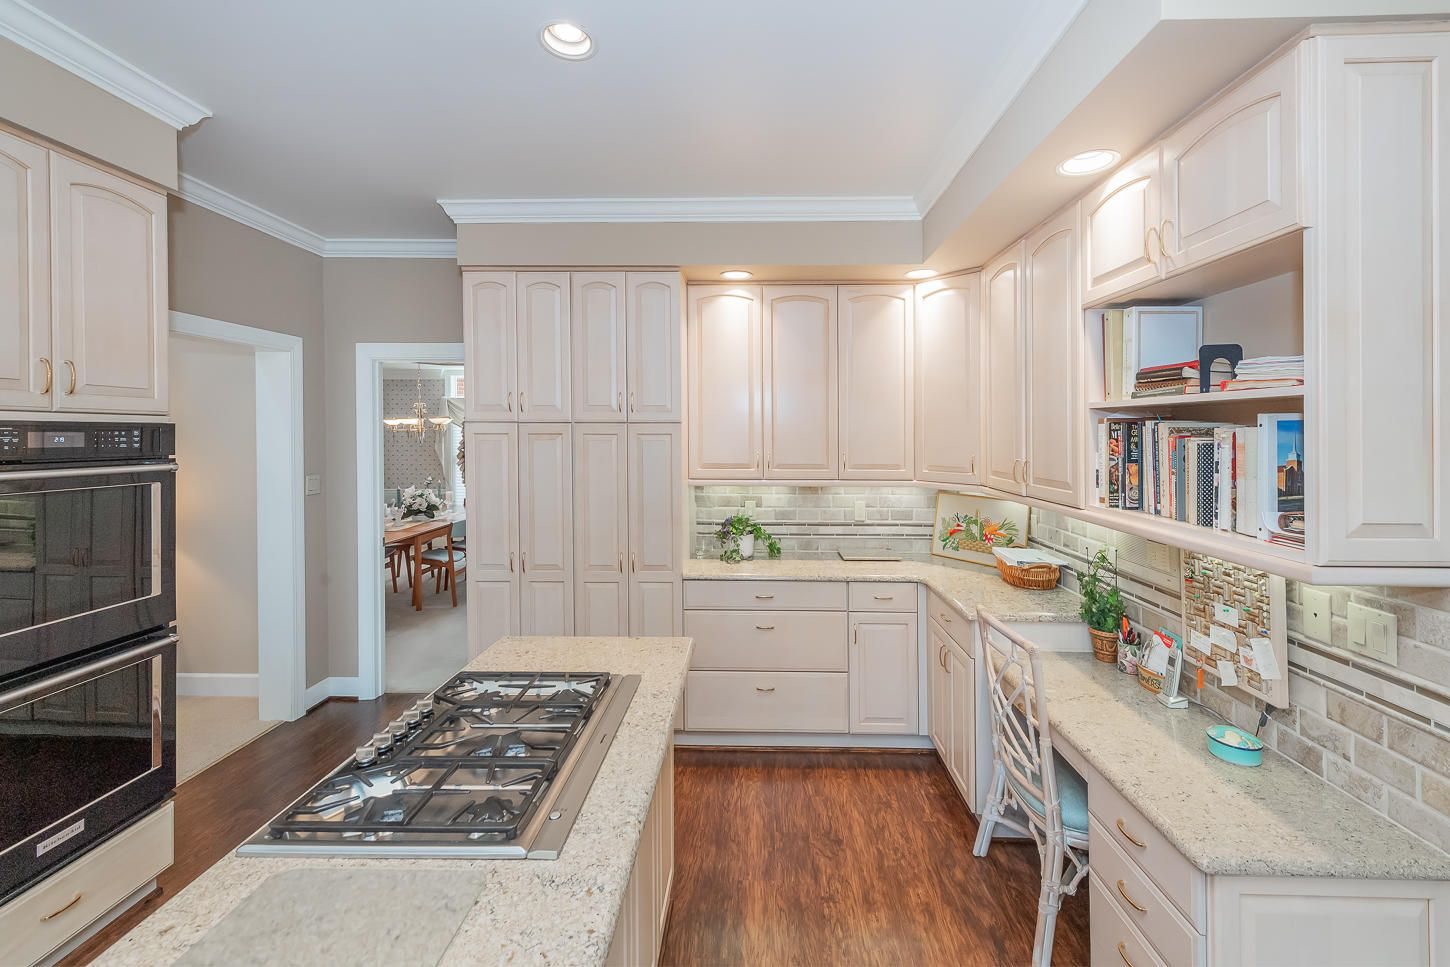 11 Kitchen cabinetry